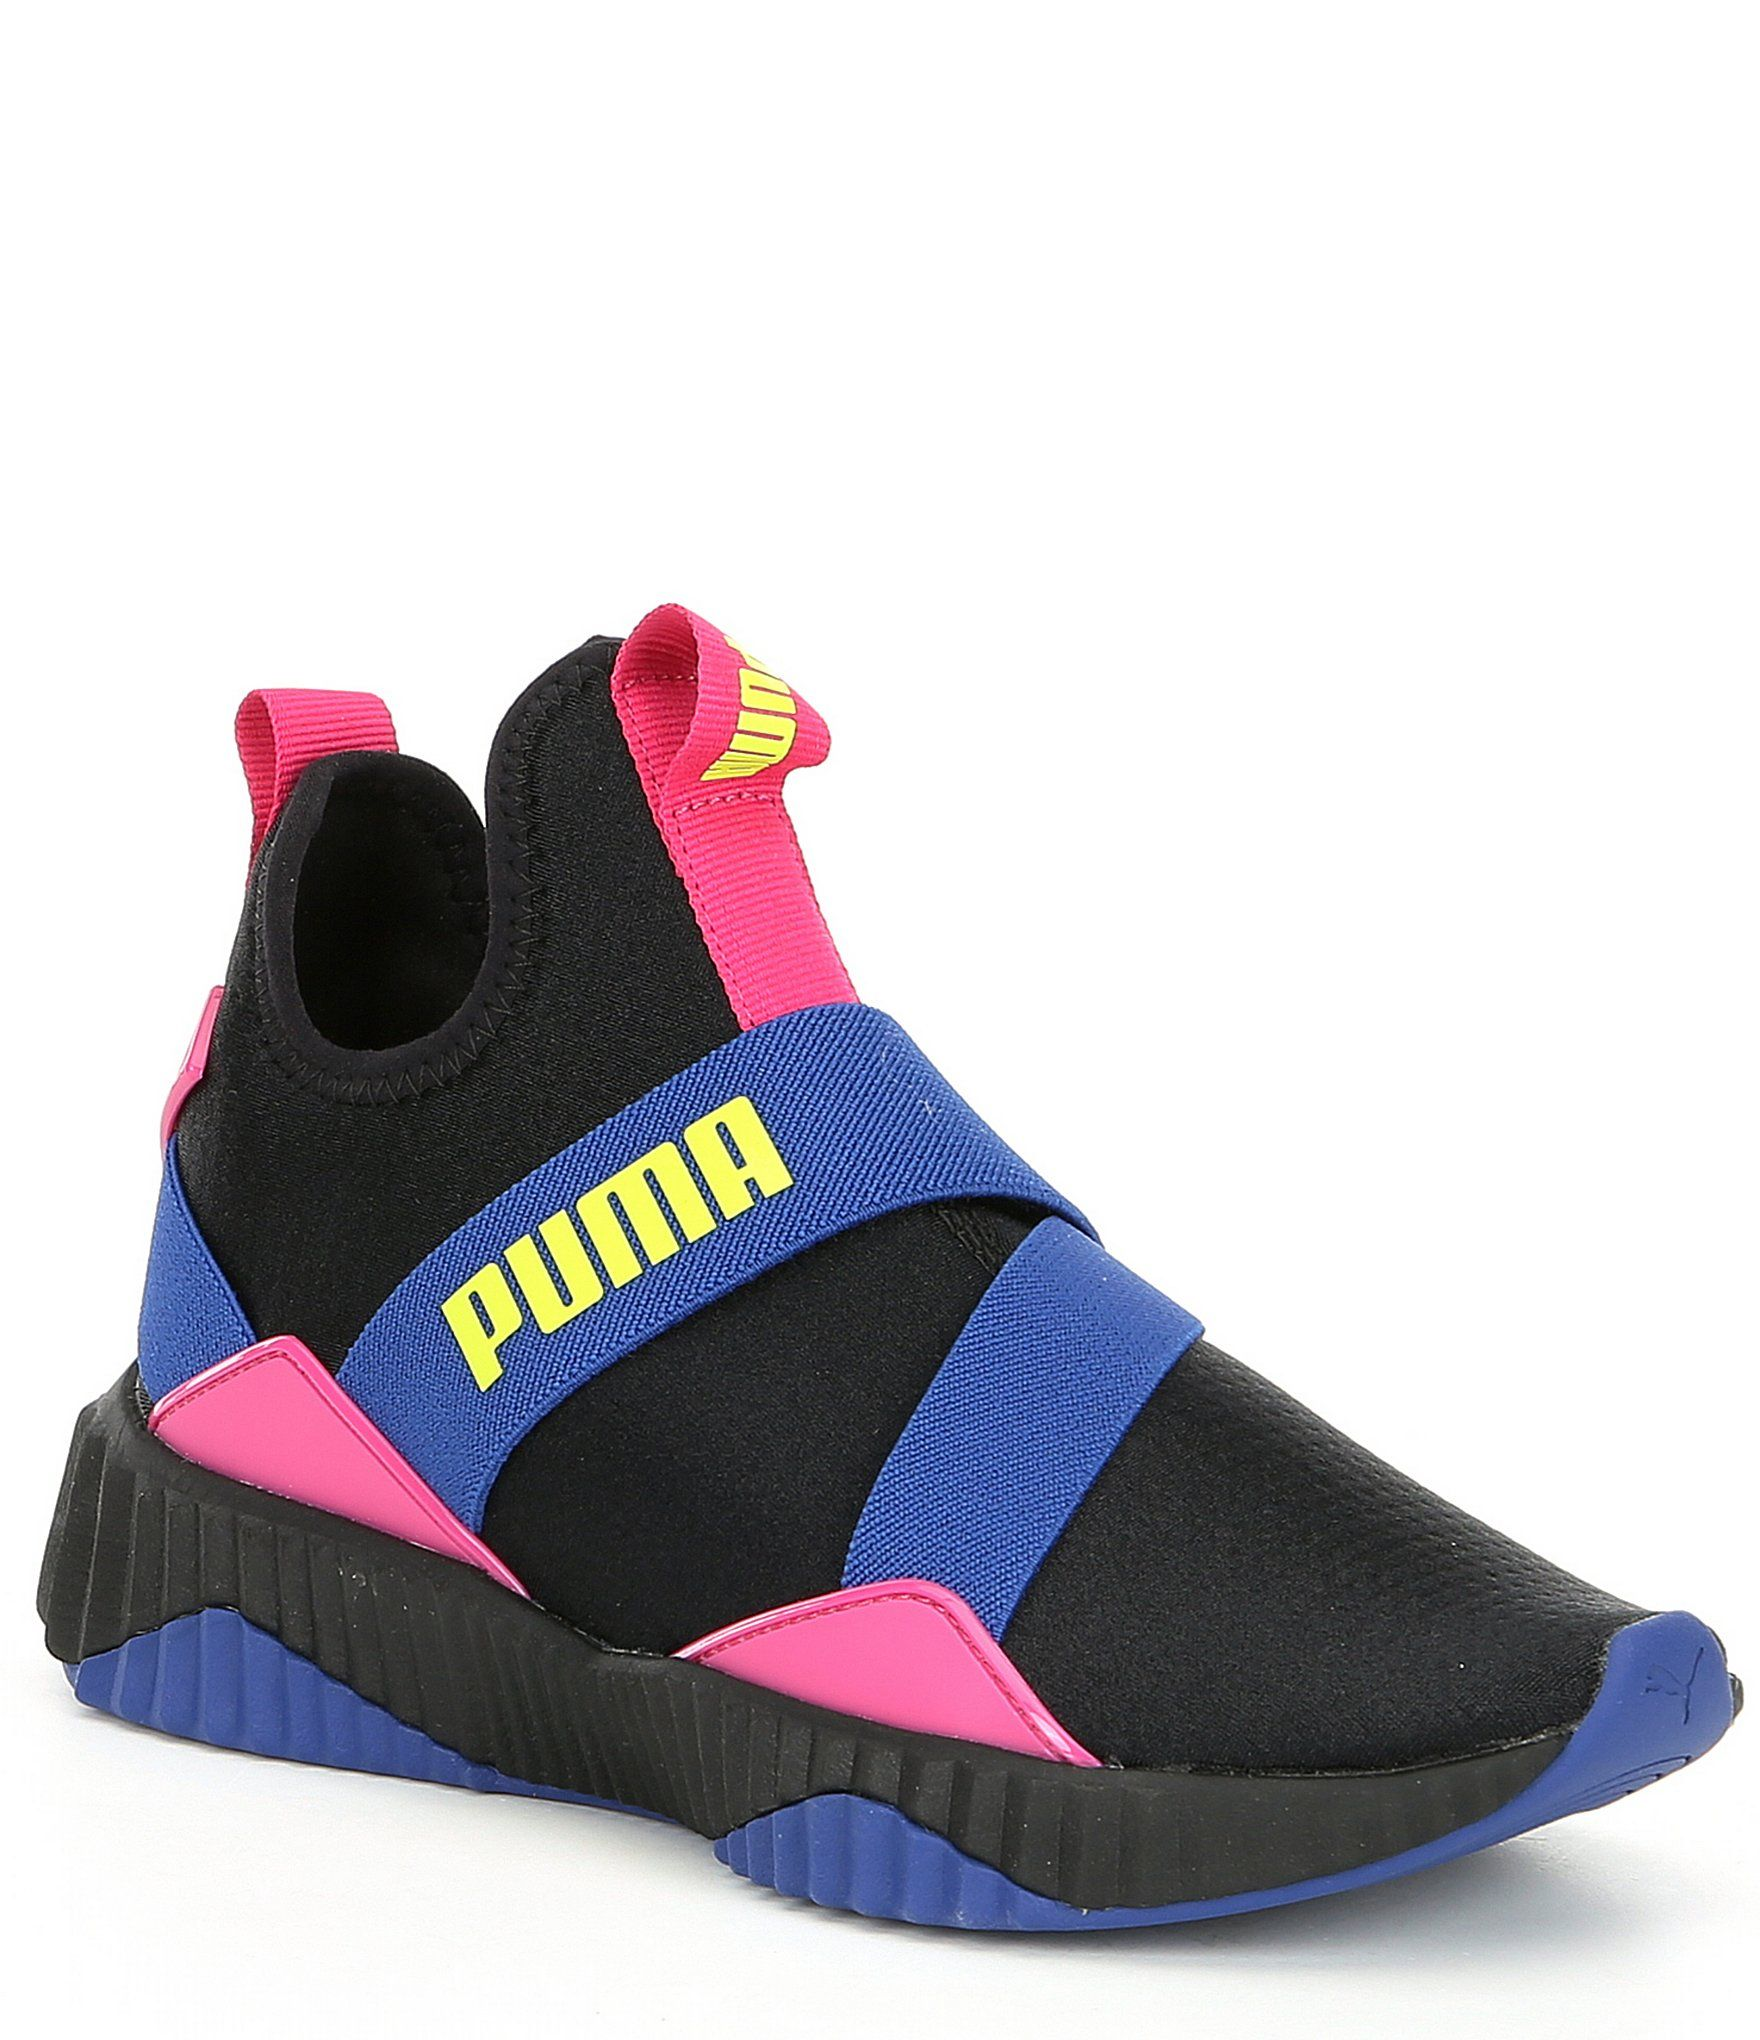 available b4c9208b2 puma womens defy mid core sneakers